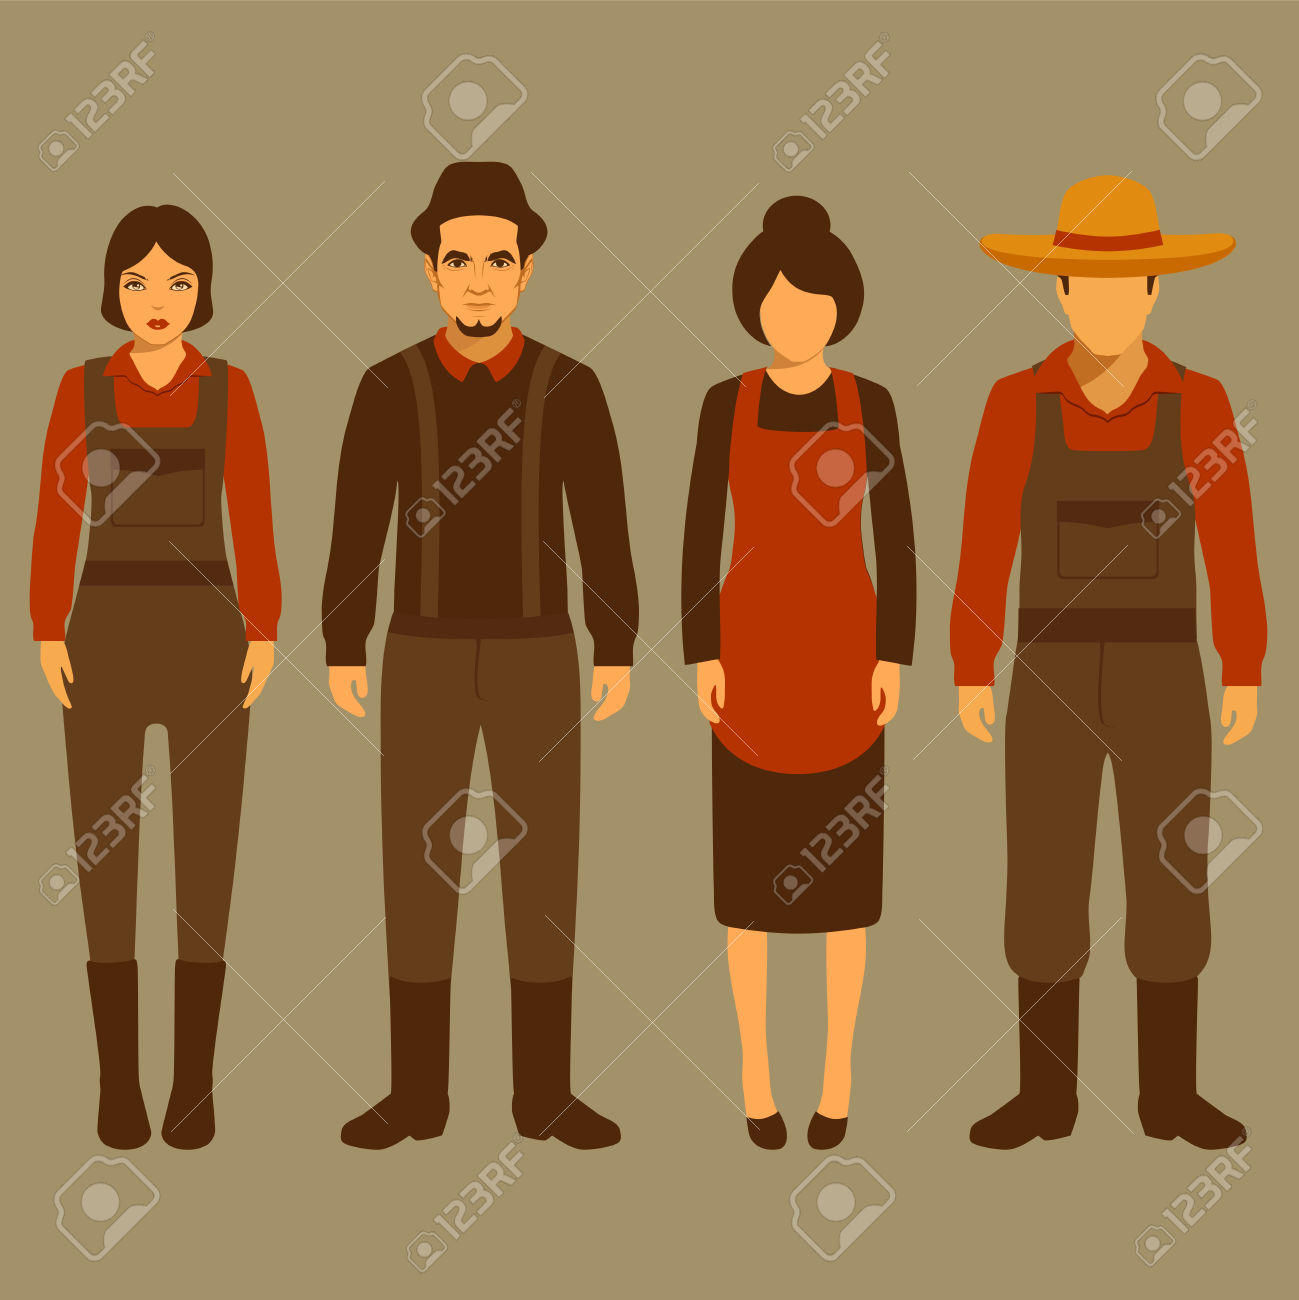 2,507 Village Character Stock Vector Illustration And Royalty Free.